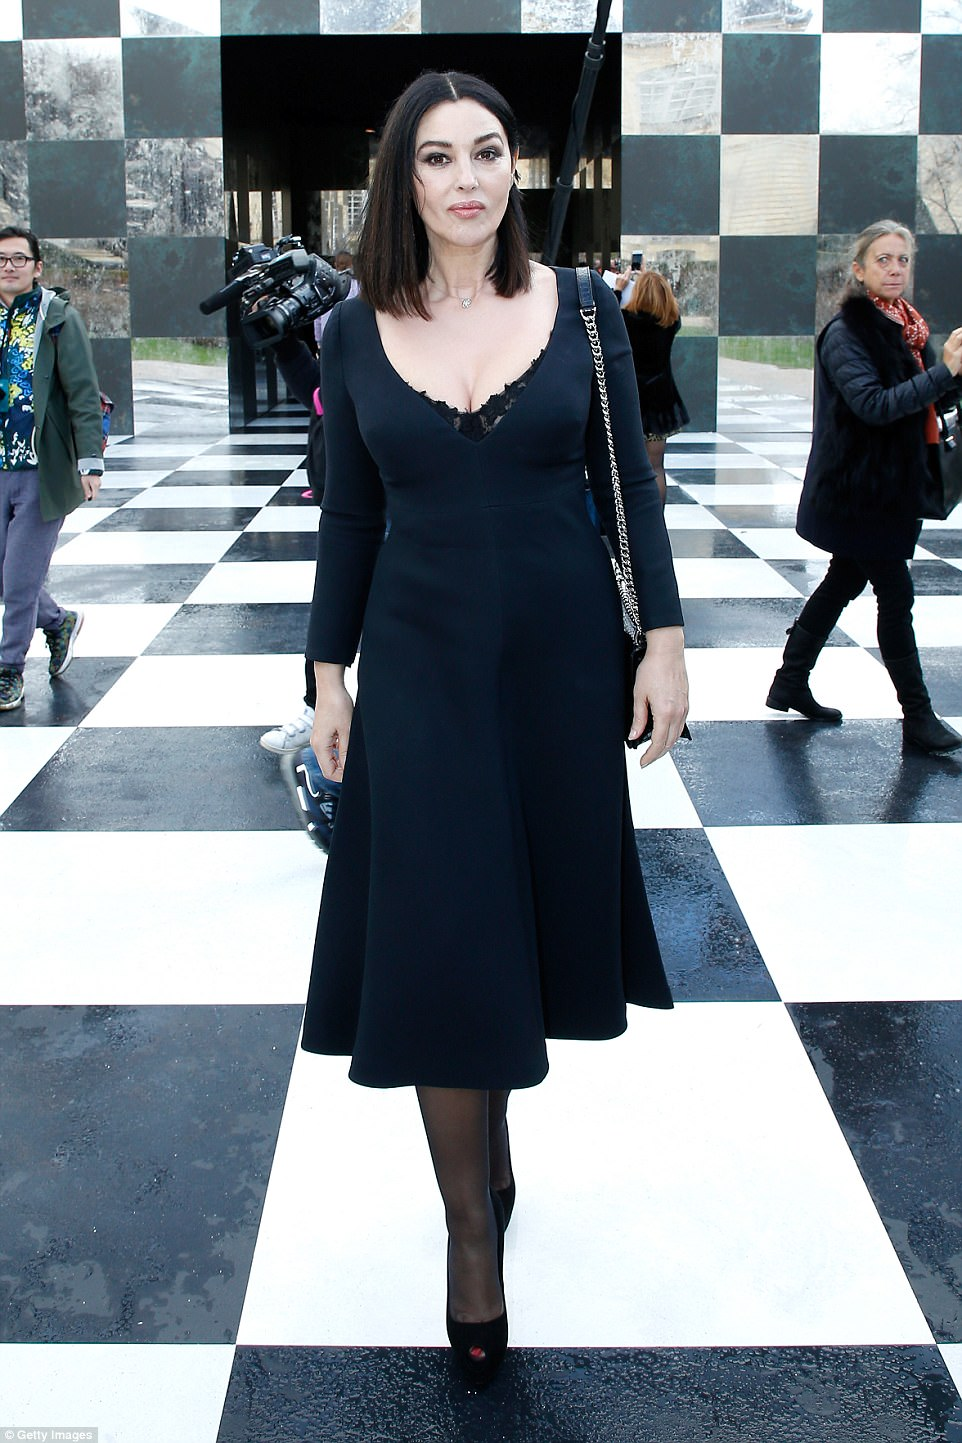 Sizzling: Italian actress Monica Bellucci, 53, put on an incredibly youthful, age-defying display as she arrived in a clingy black dress and towering heels